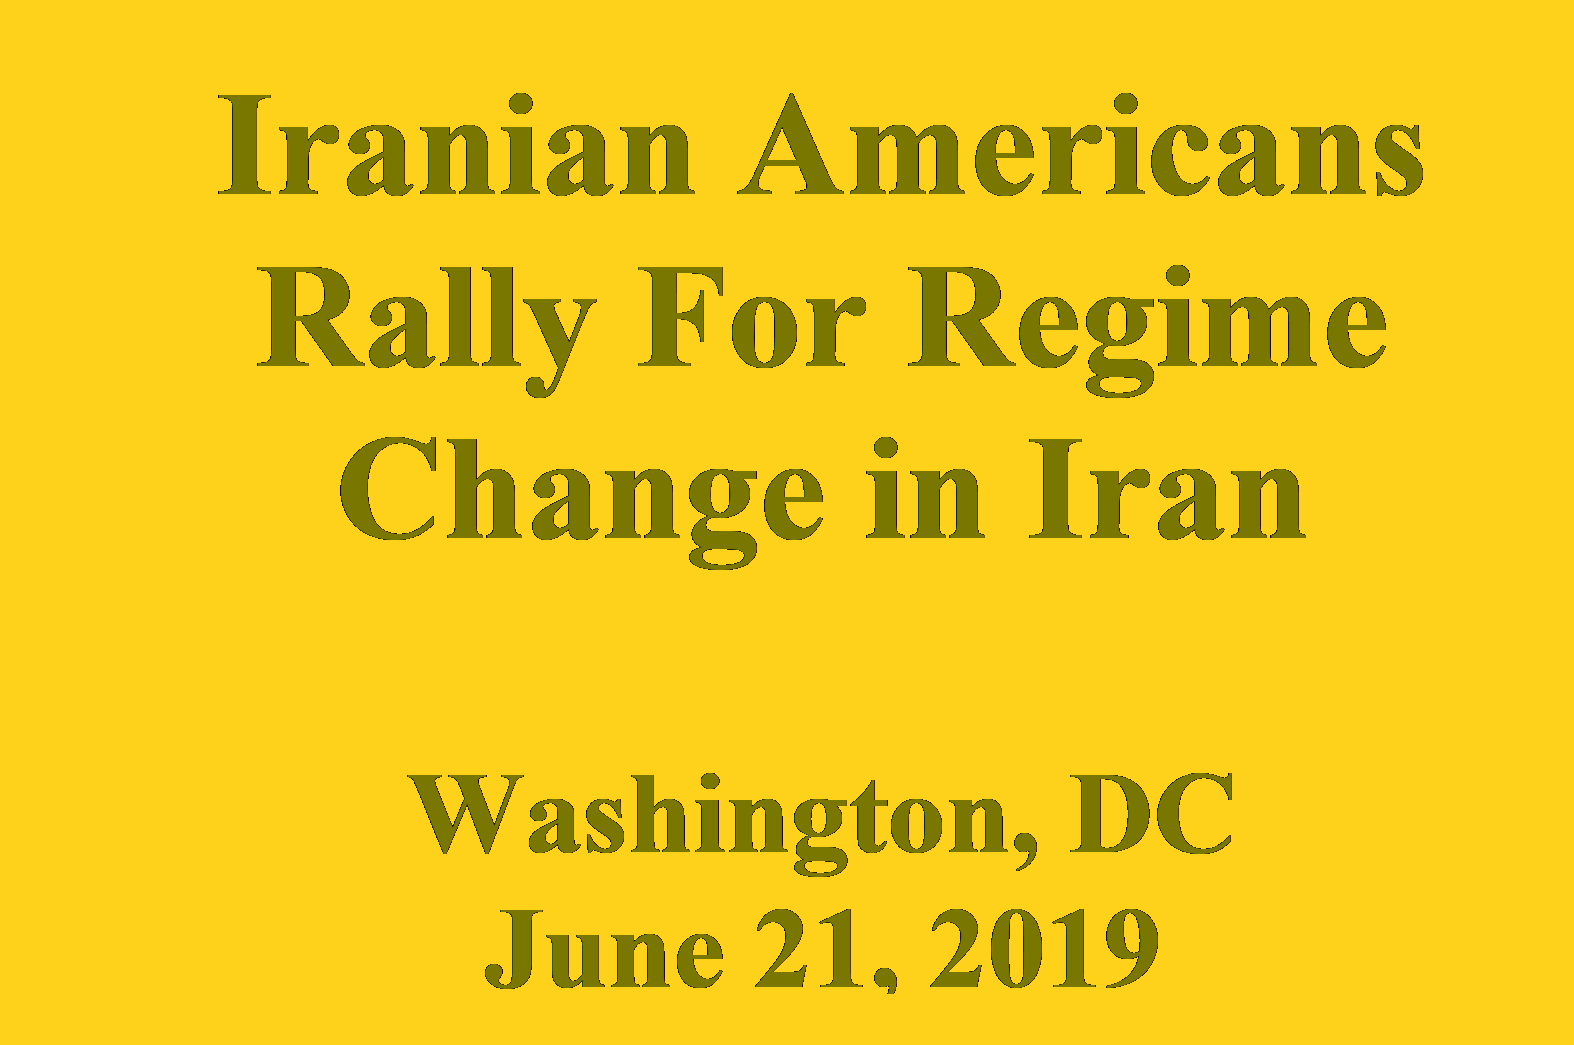 Iranian Americans Rally for Regime Change in Iran